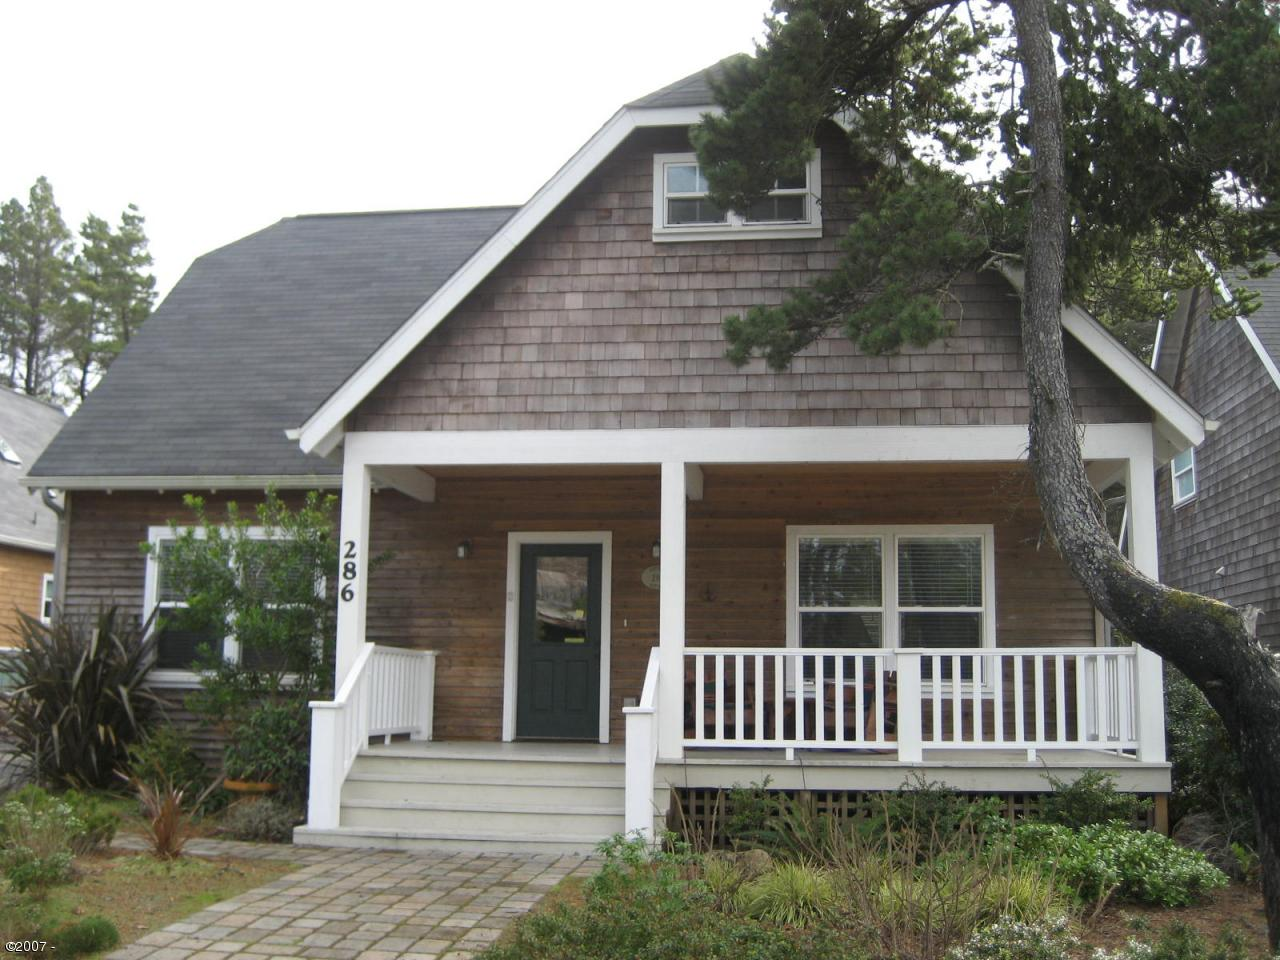 286 #3 Bella Beach Dr, Depoe Bay, OR 97341 - From the Street